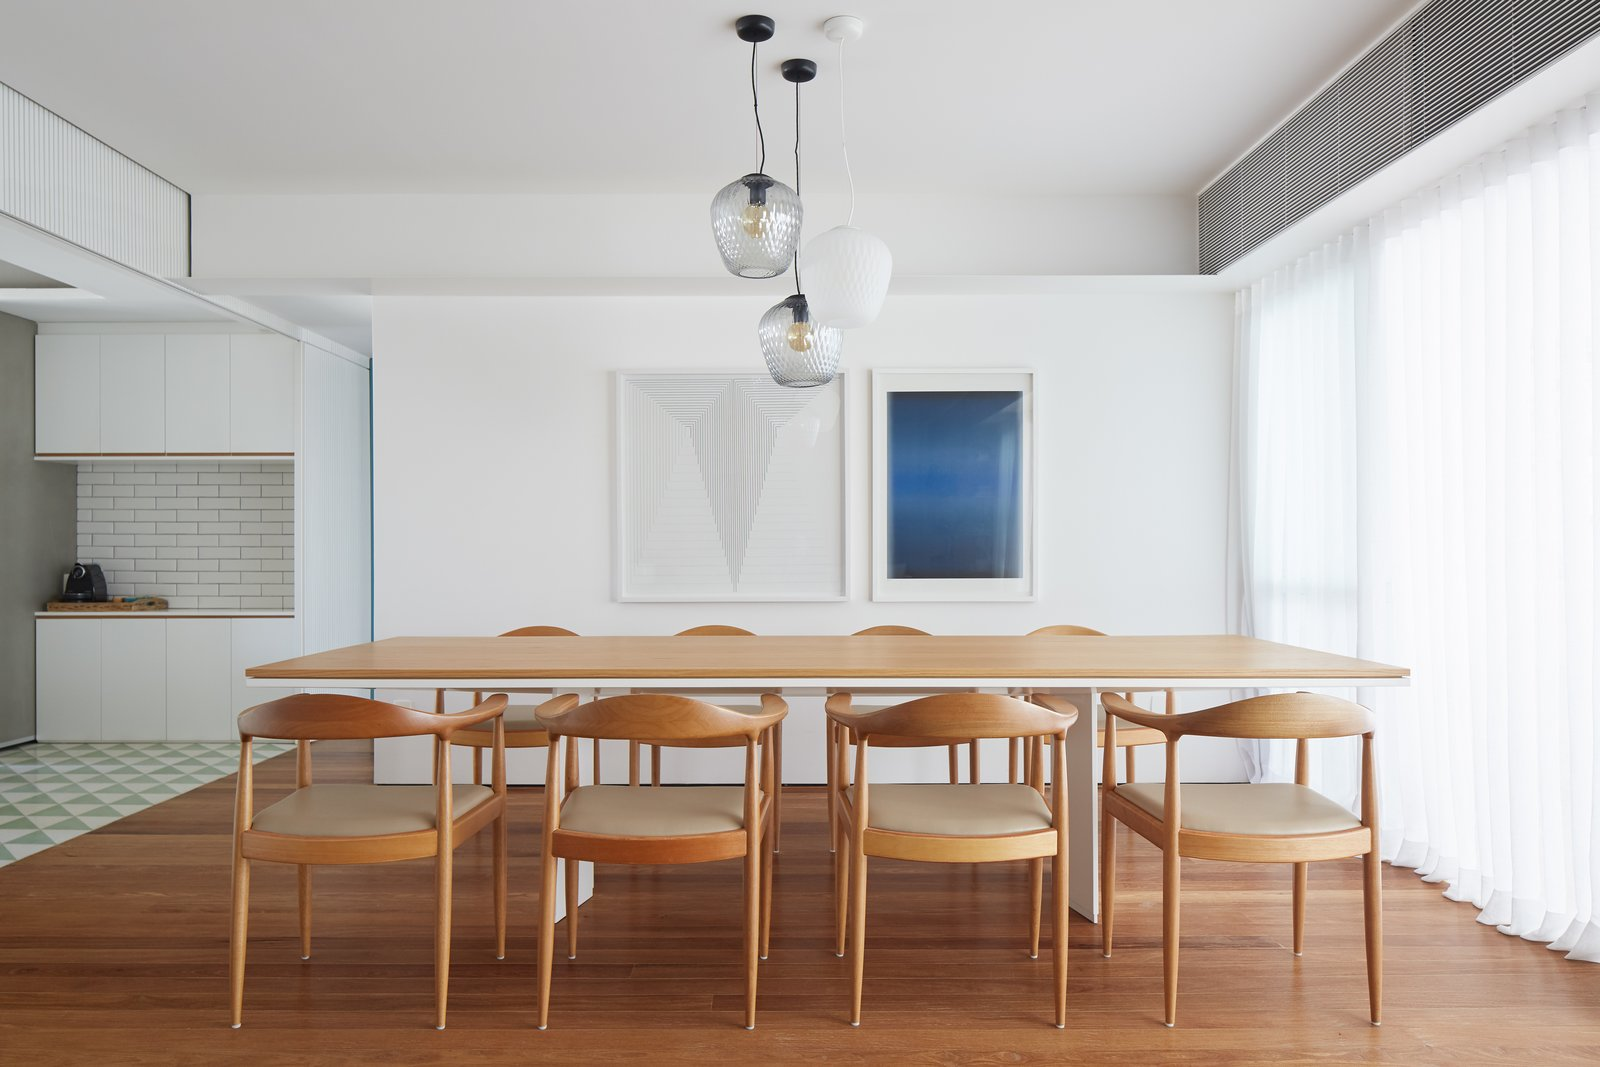 Dining Room, Pendant Lighting, Table, Medium Hardwood Floor, Rug Floor, and Chair T  Photo 5 of 17 in Color Unites With Texture to Make This Brazilian Abode Appear Much Larger and Brighter